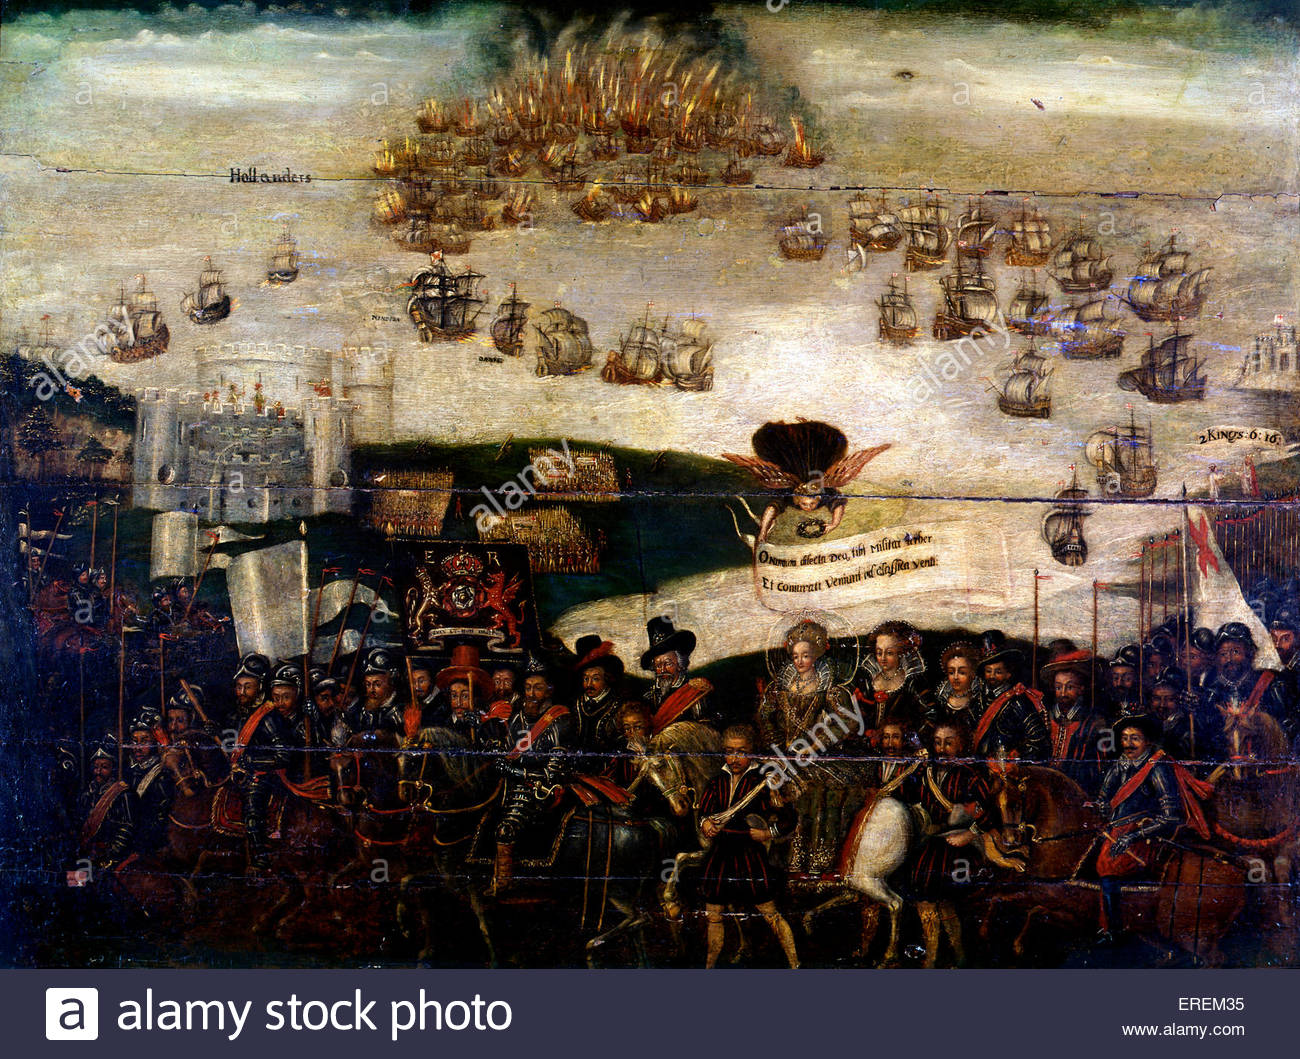 Spanish Armada Dyptich, St Faith's church, Kings Lynn, Norfolk.Detail. Depiction of failed Spanish naval invasion - Stock Image